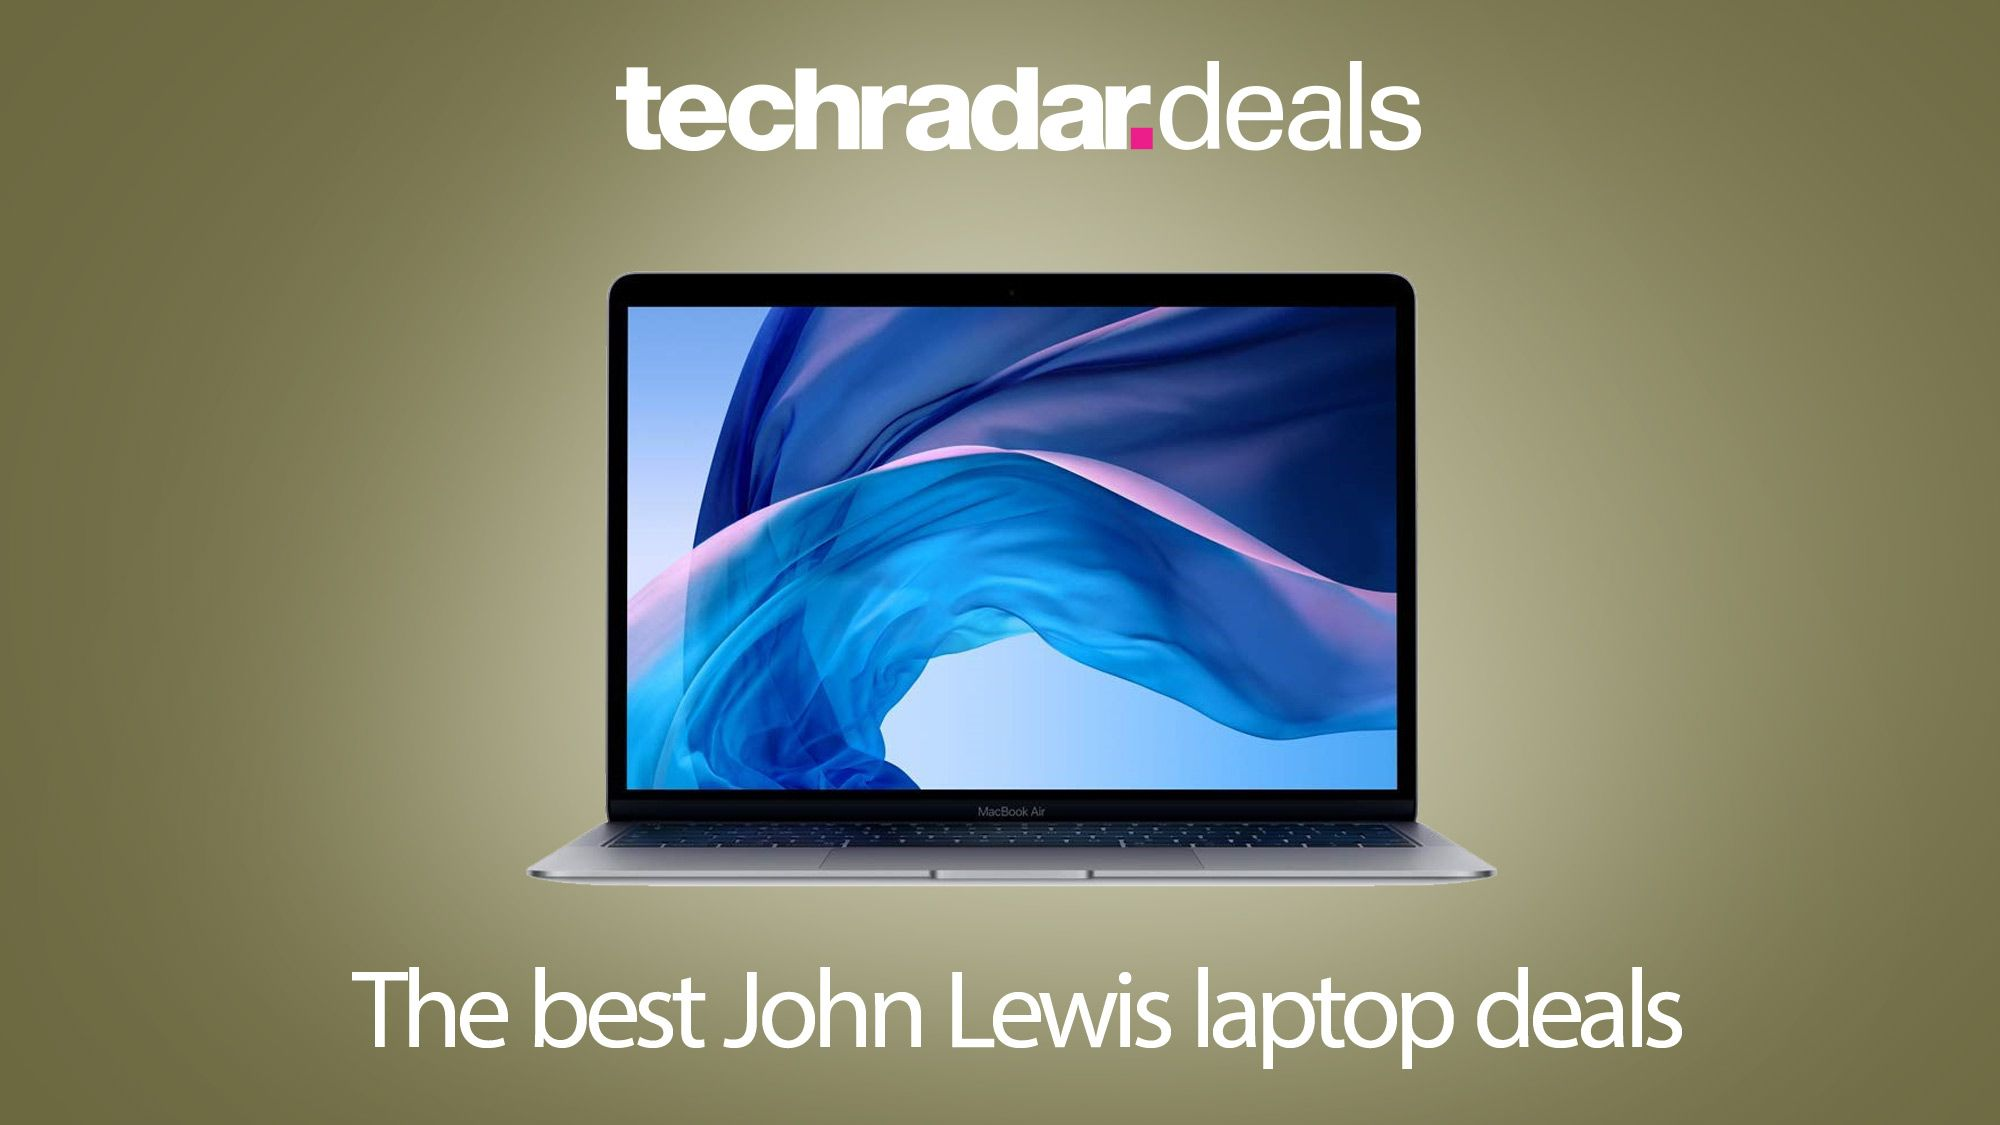 Fantastic John Lewis Black Friday Laptop Deals Come With A Unique Reason To Buy Black Friday Laptop Laptop Deals Black Friday Laptop Deals